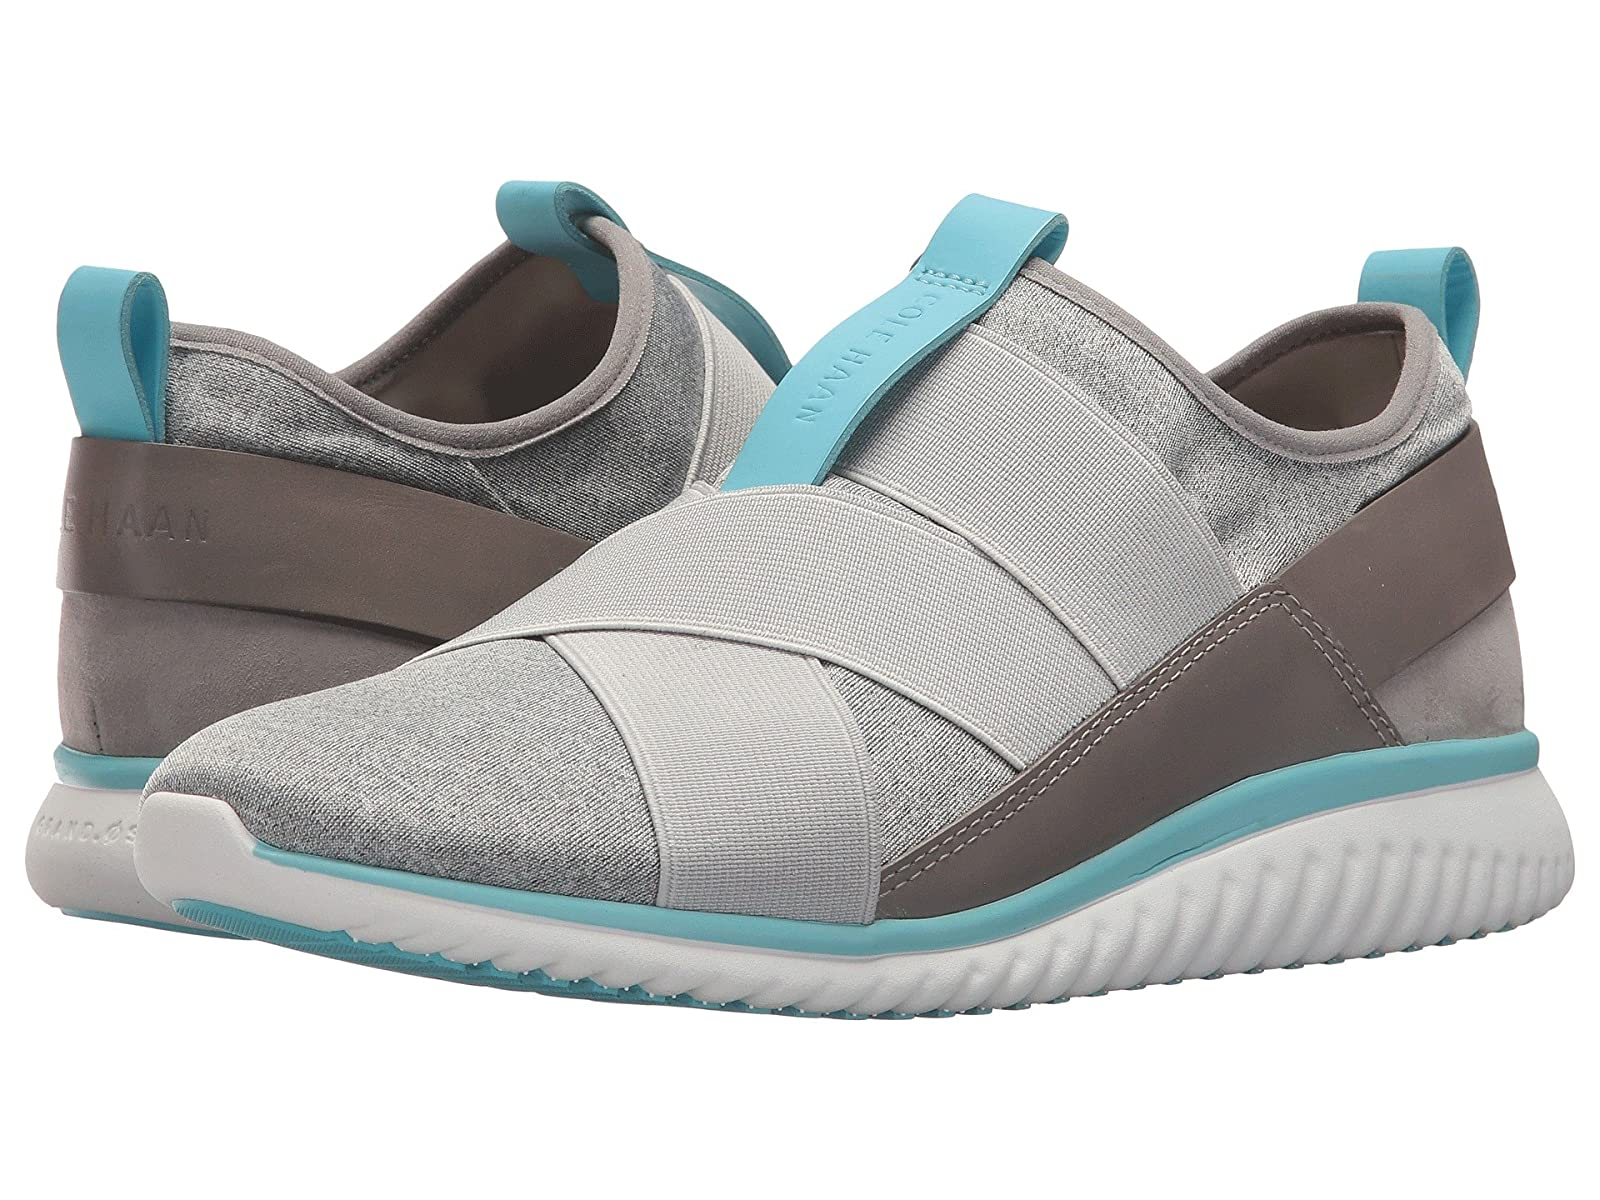 Cole Haan Studiogrand Sport Knit TrainerCheap and distinctive eye-catching shoes